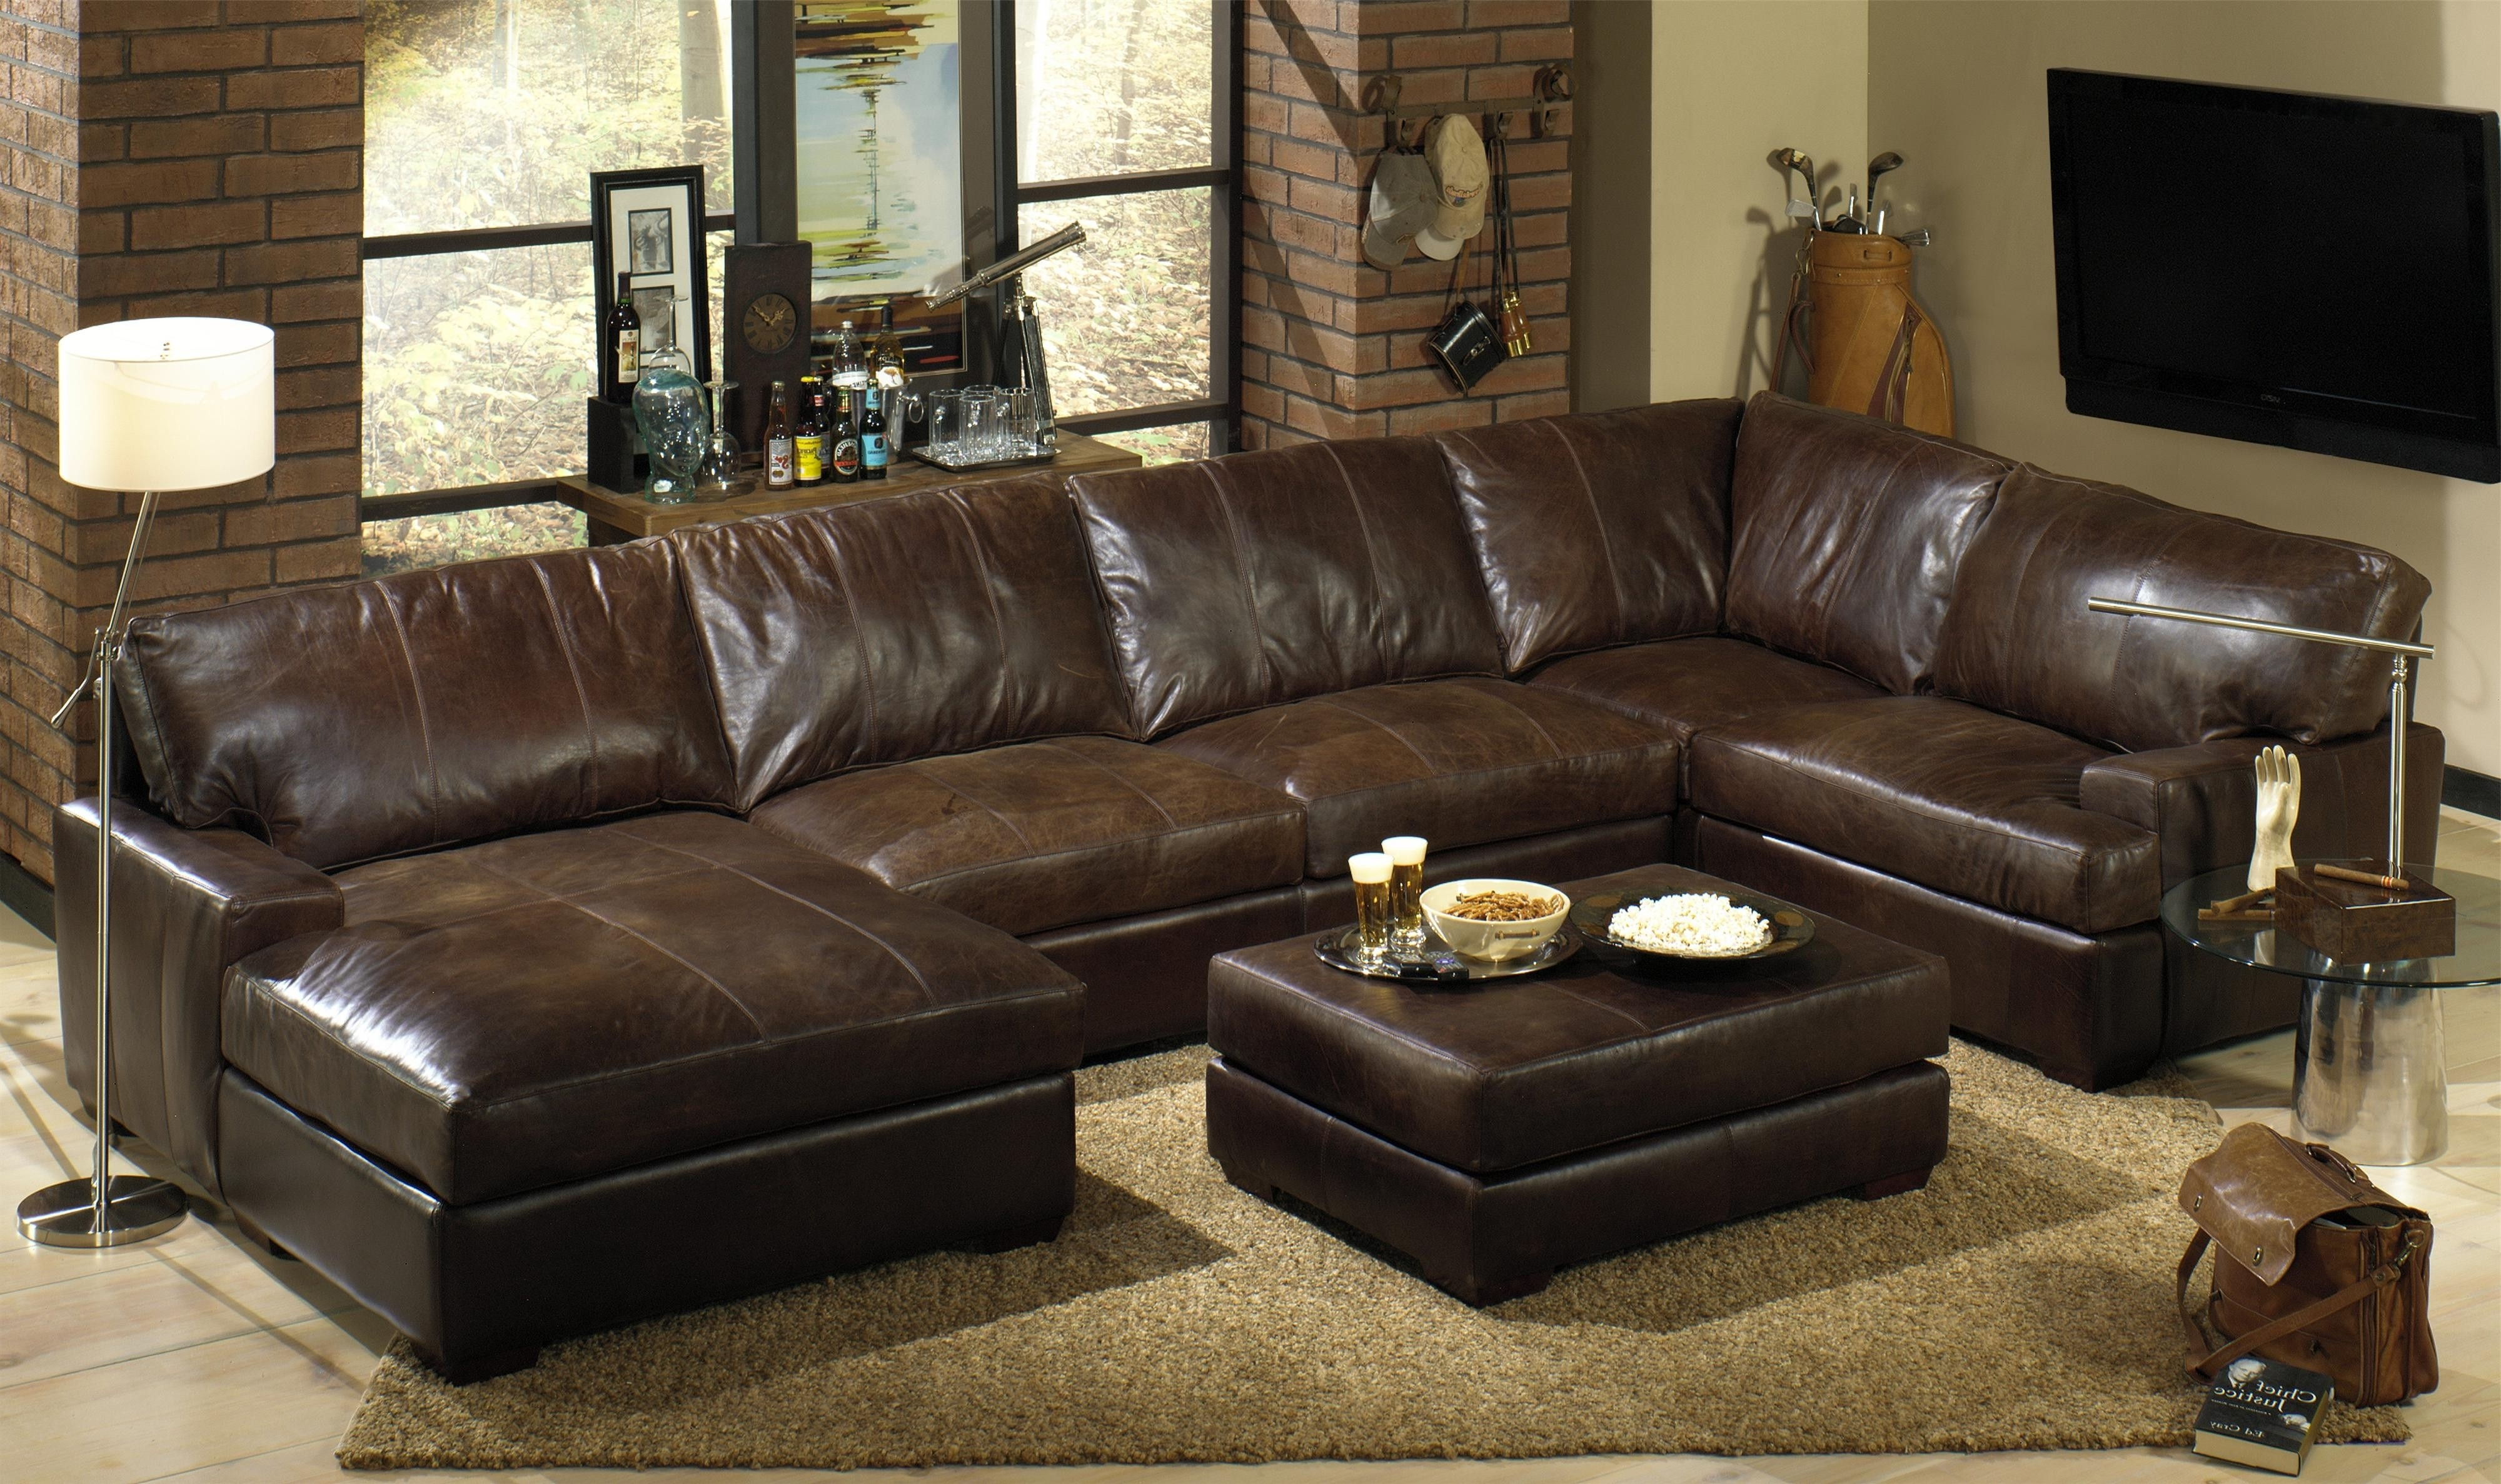 Leather Sectional Sofas Awesome 6 Piece Leather Sectional Sofa With Regard To Favorite 6 Piece Leather Sectional Sofas (View 9 of 15)